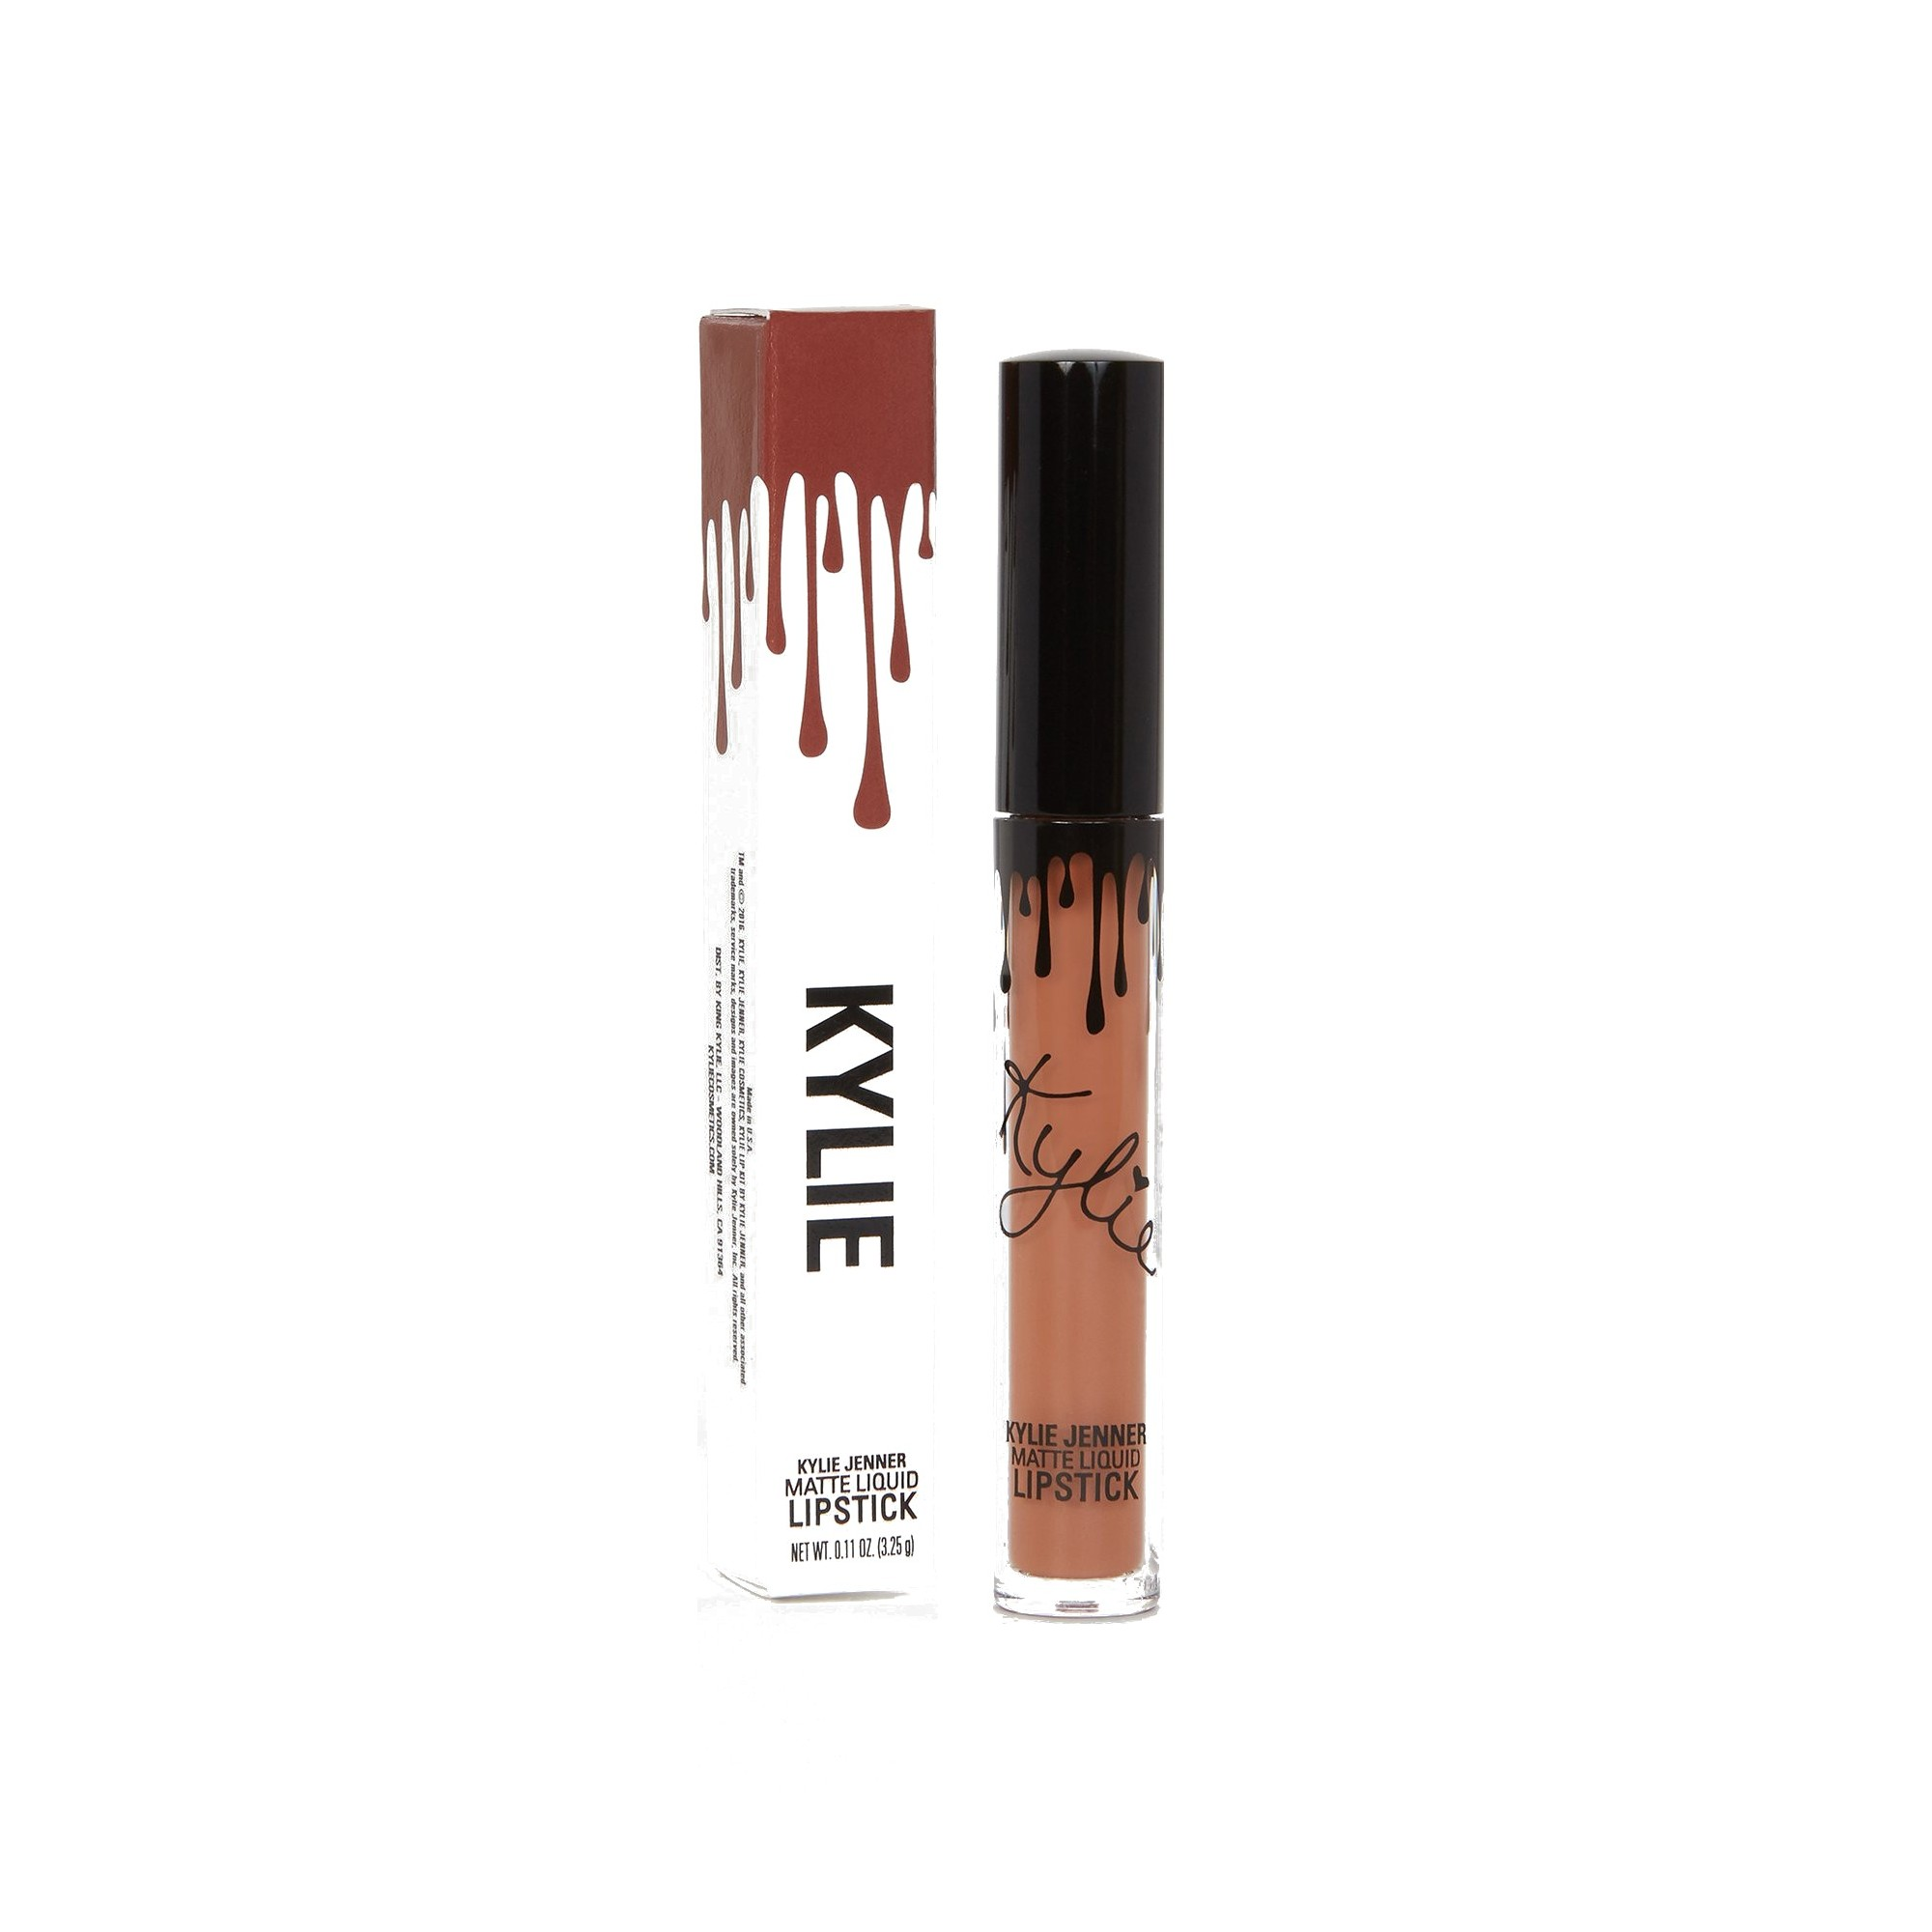 Kylie Cosmetics Brown Sugar Matte Liquid Lipstick